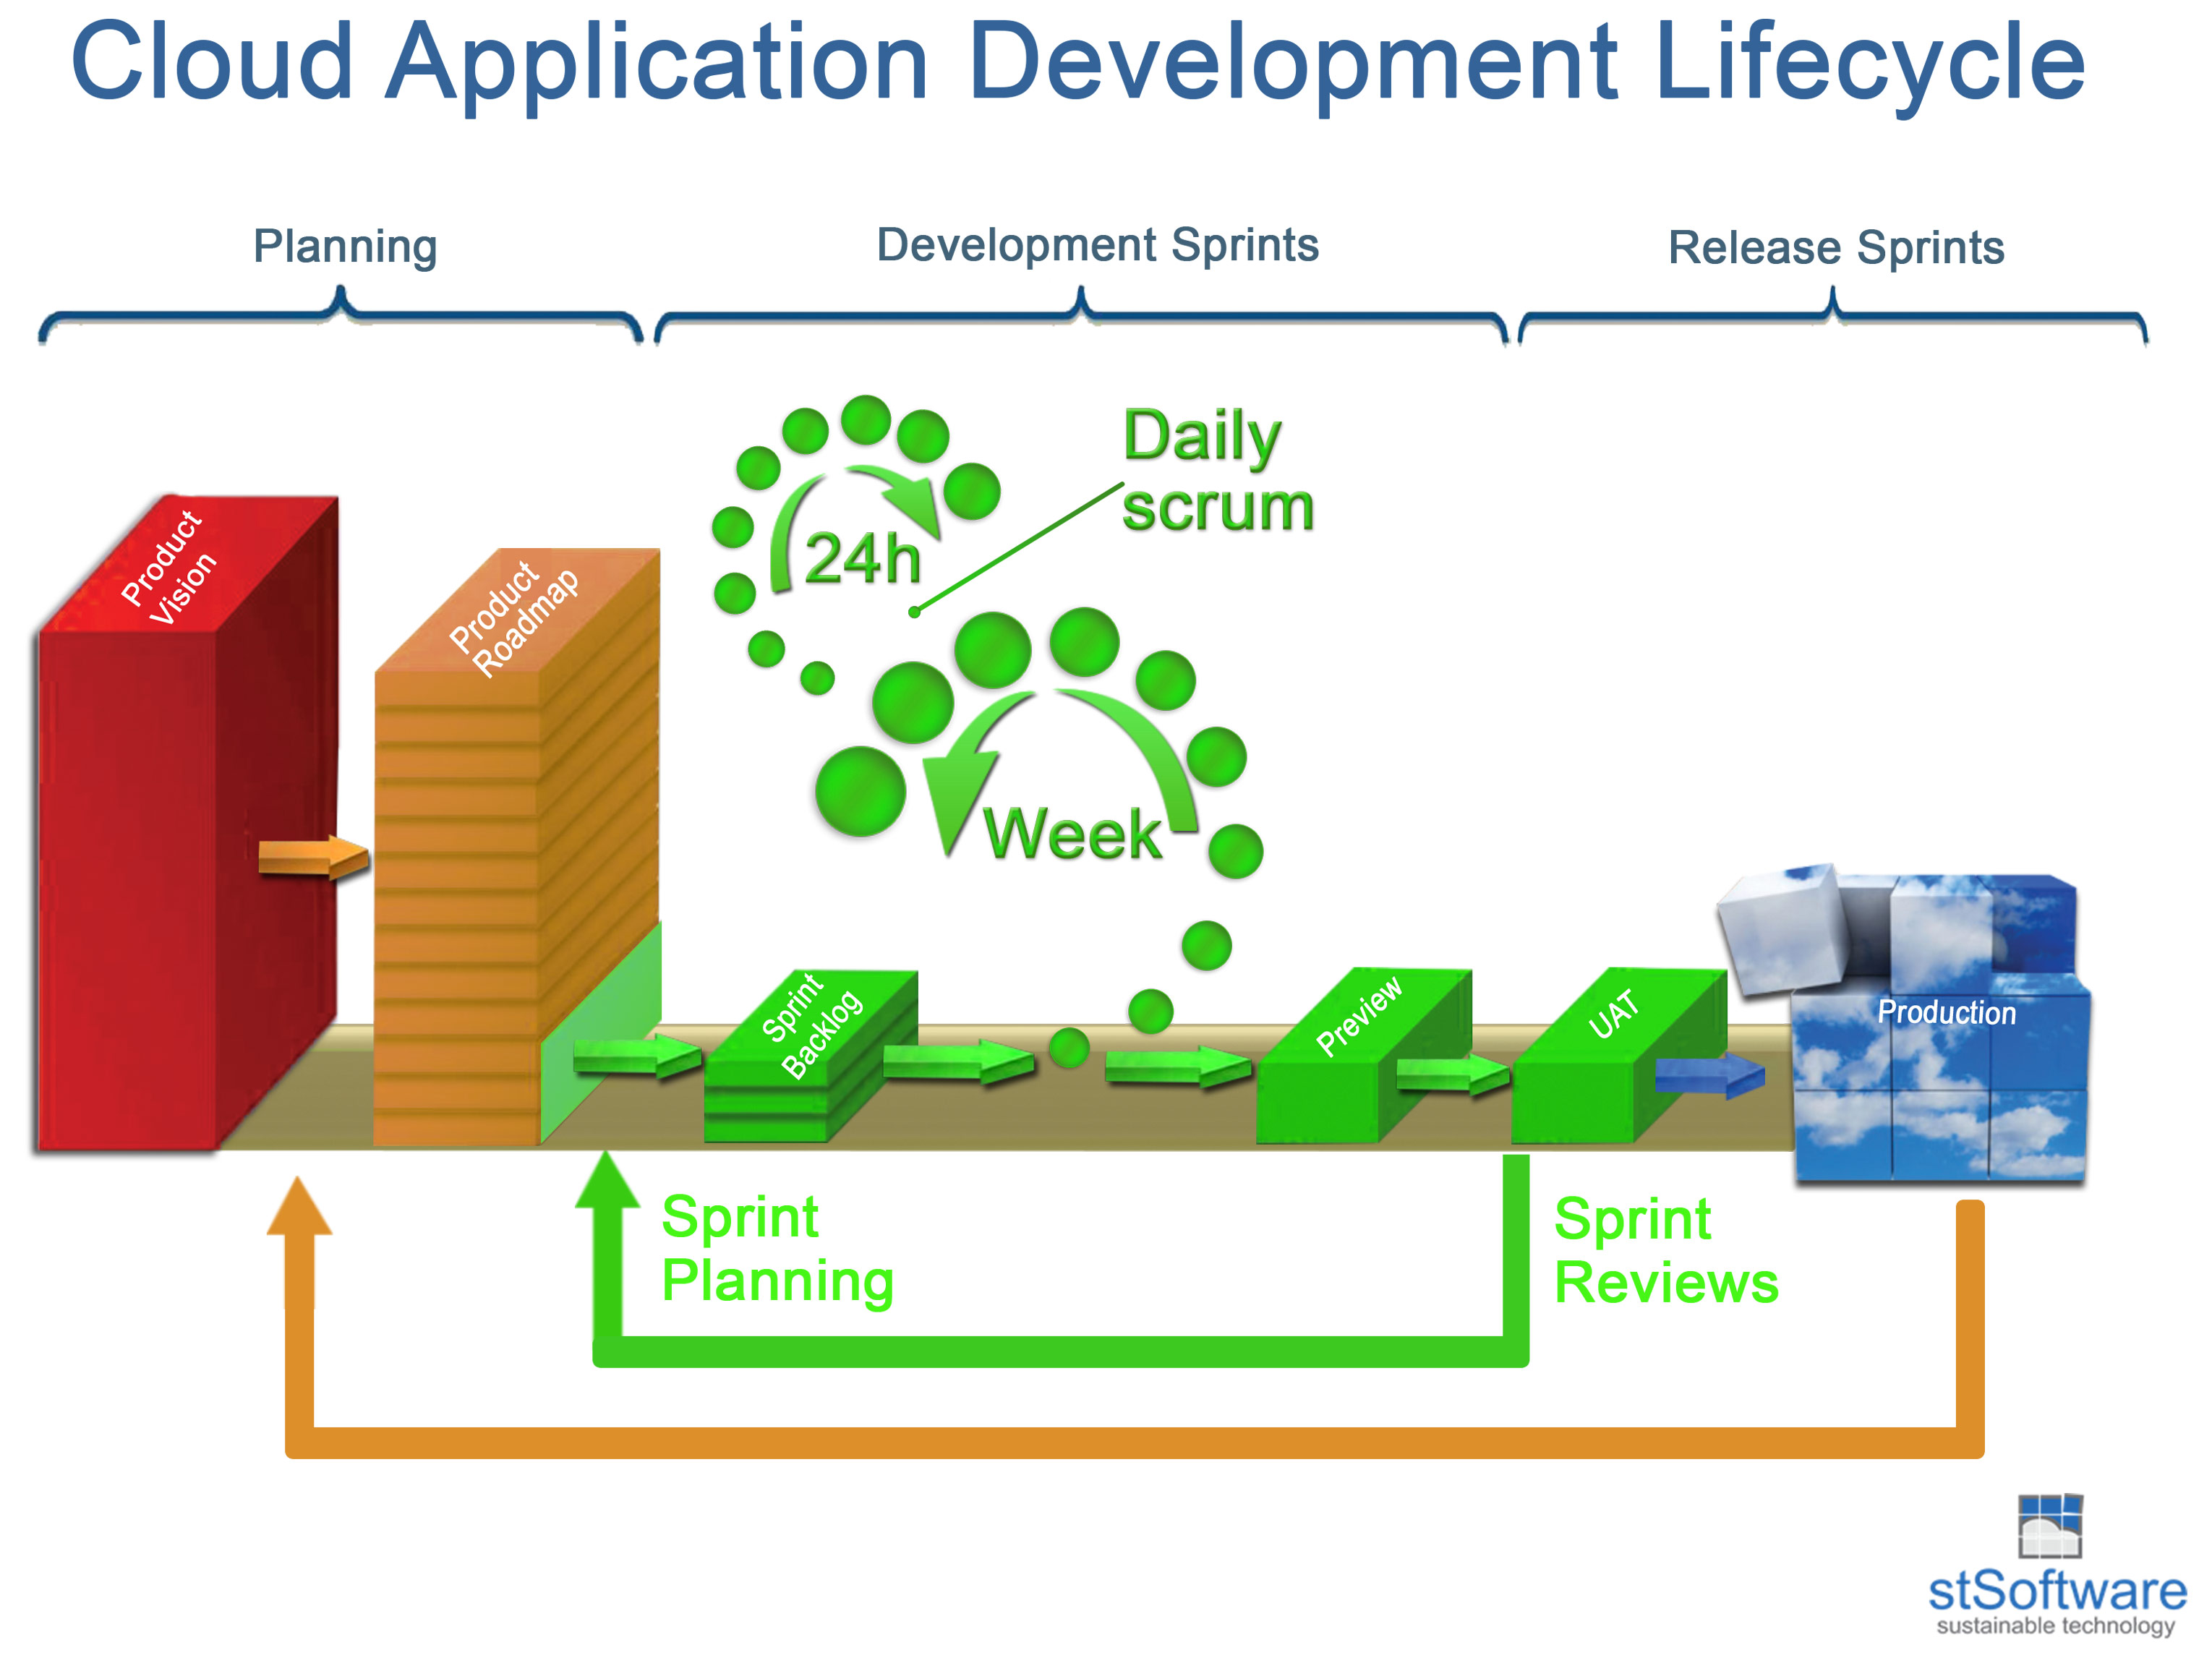 Cloud Application Development Lifecycle